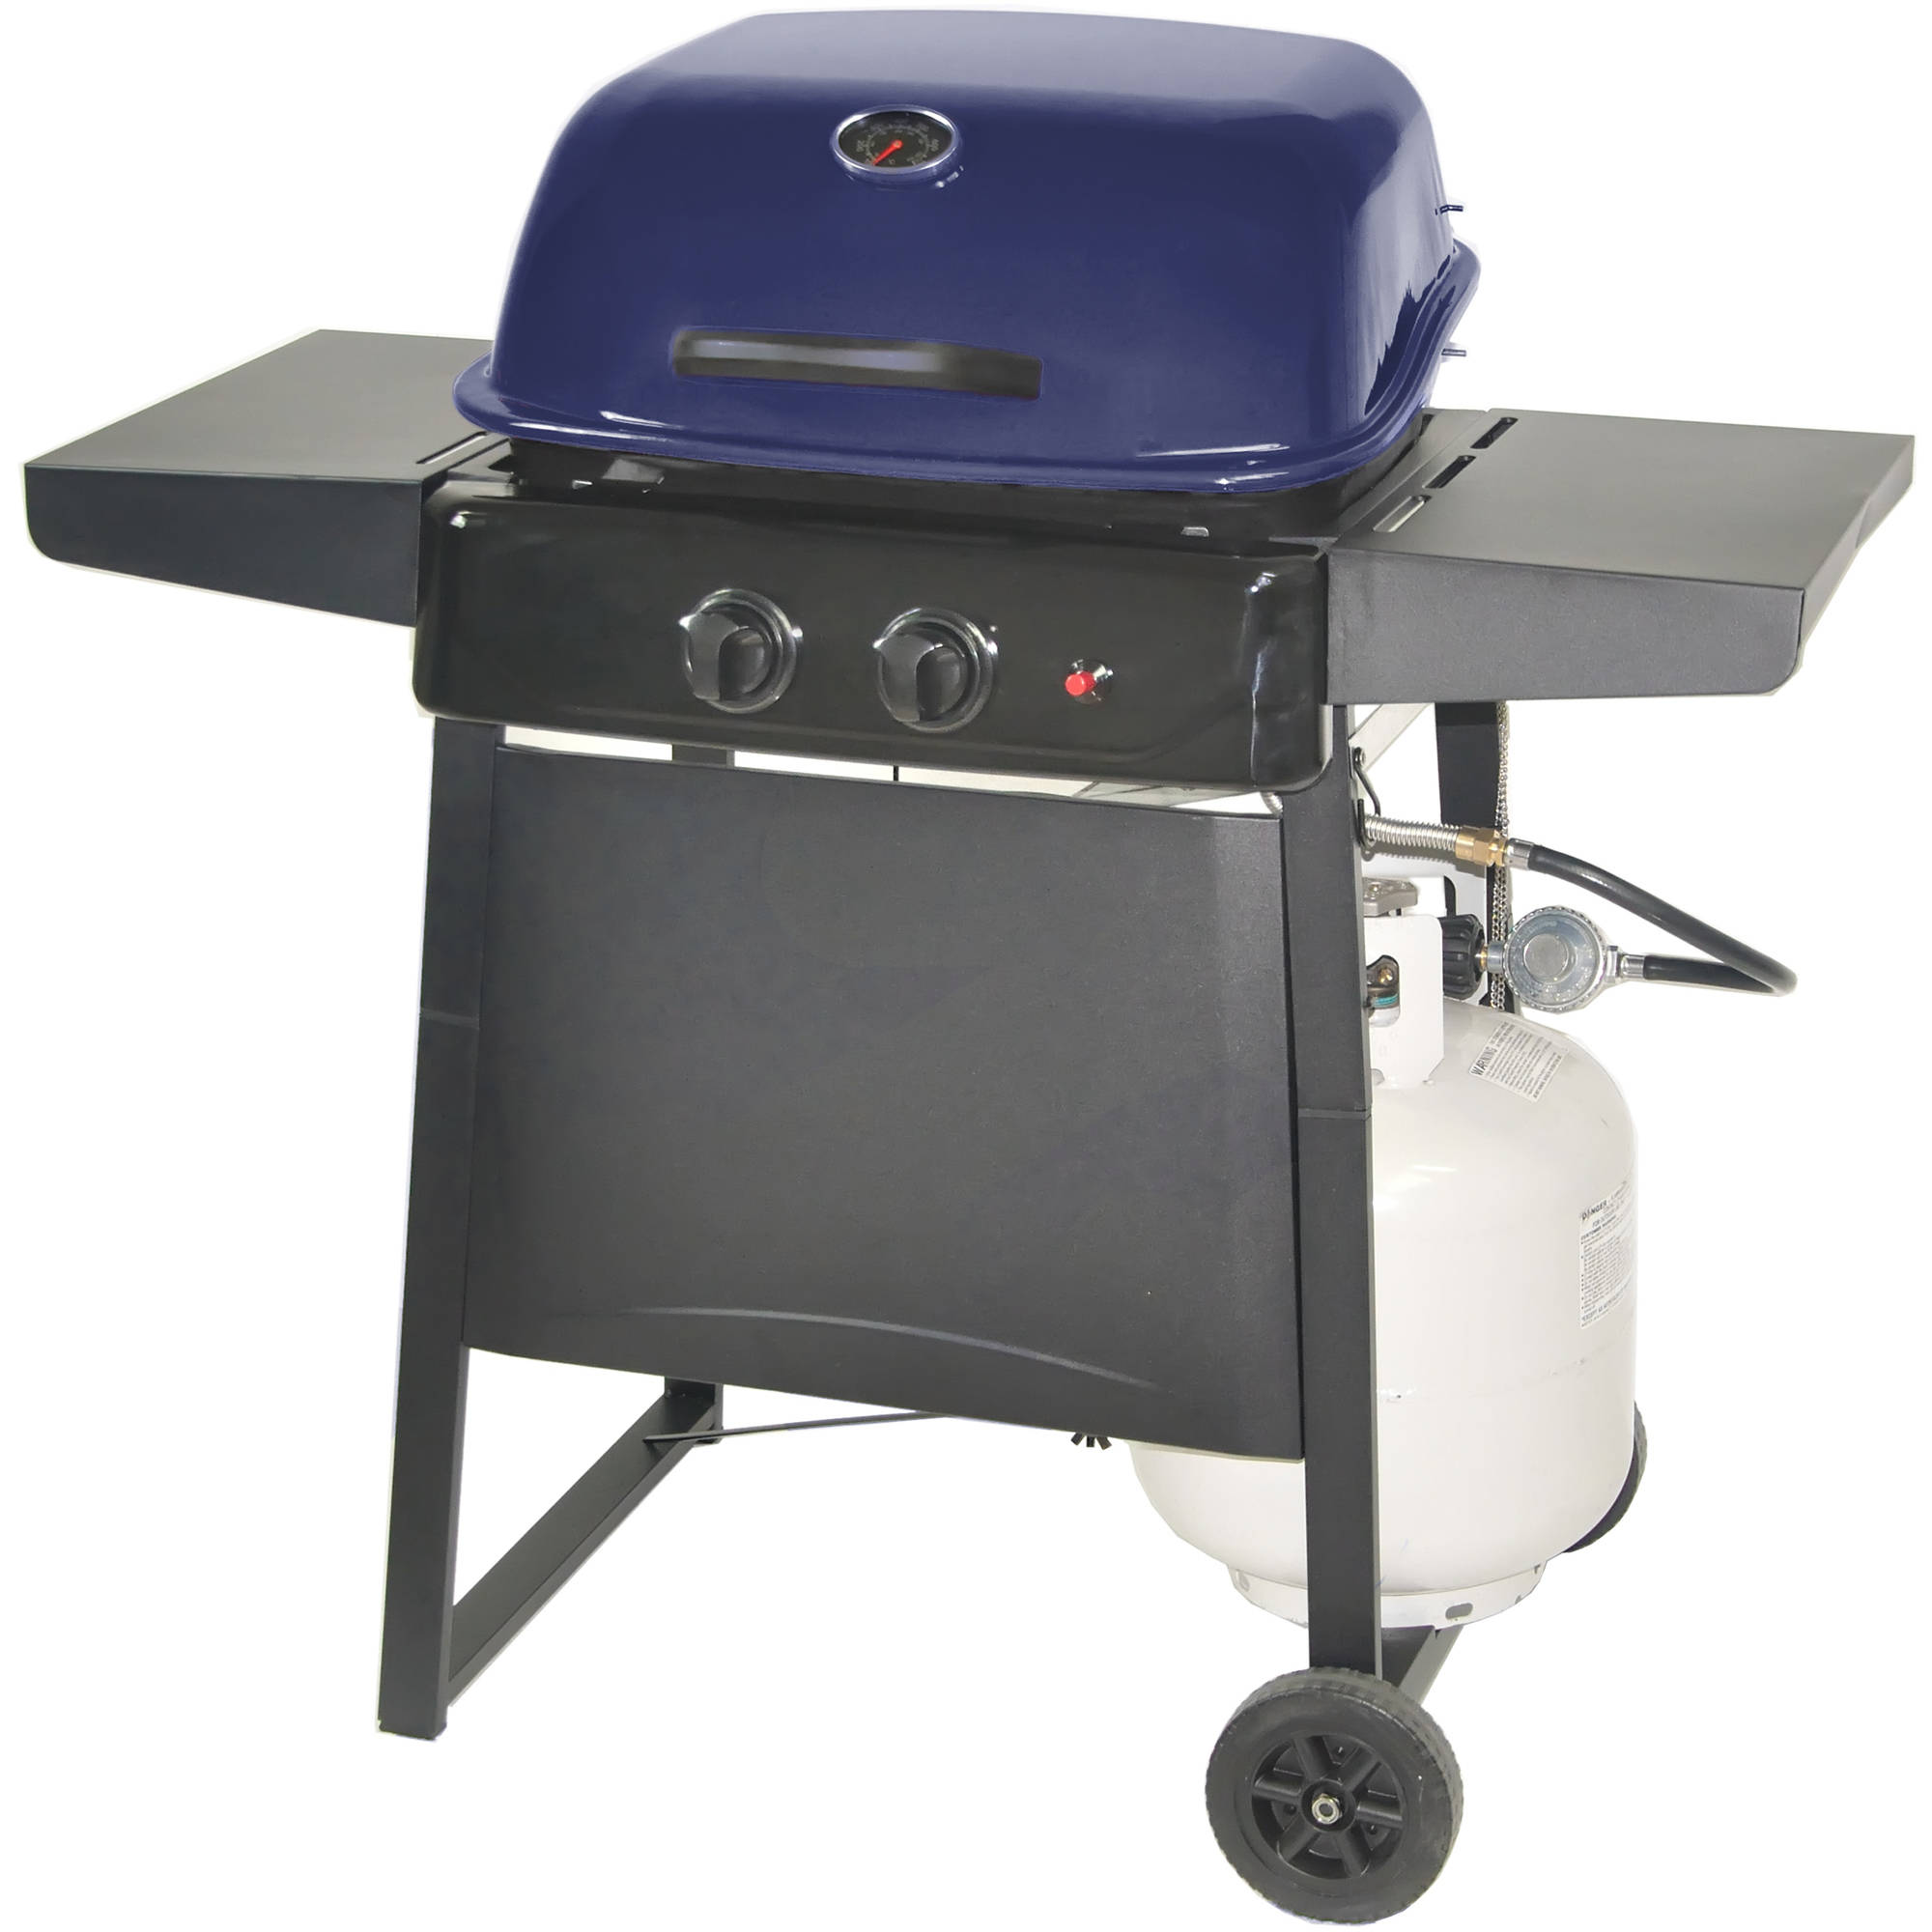 RevoAce 2-Burner LP Gas Grill, Deep Cobalt Blue by